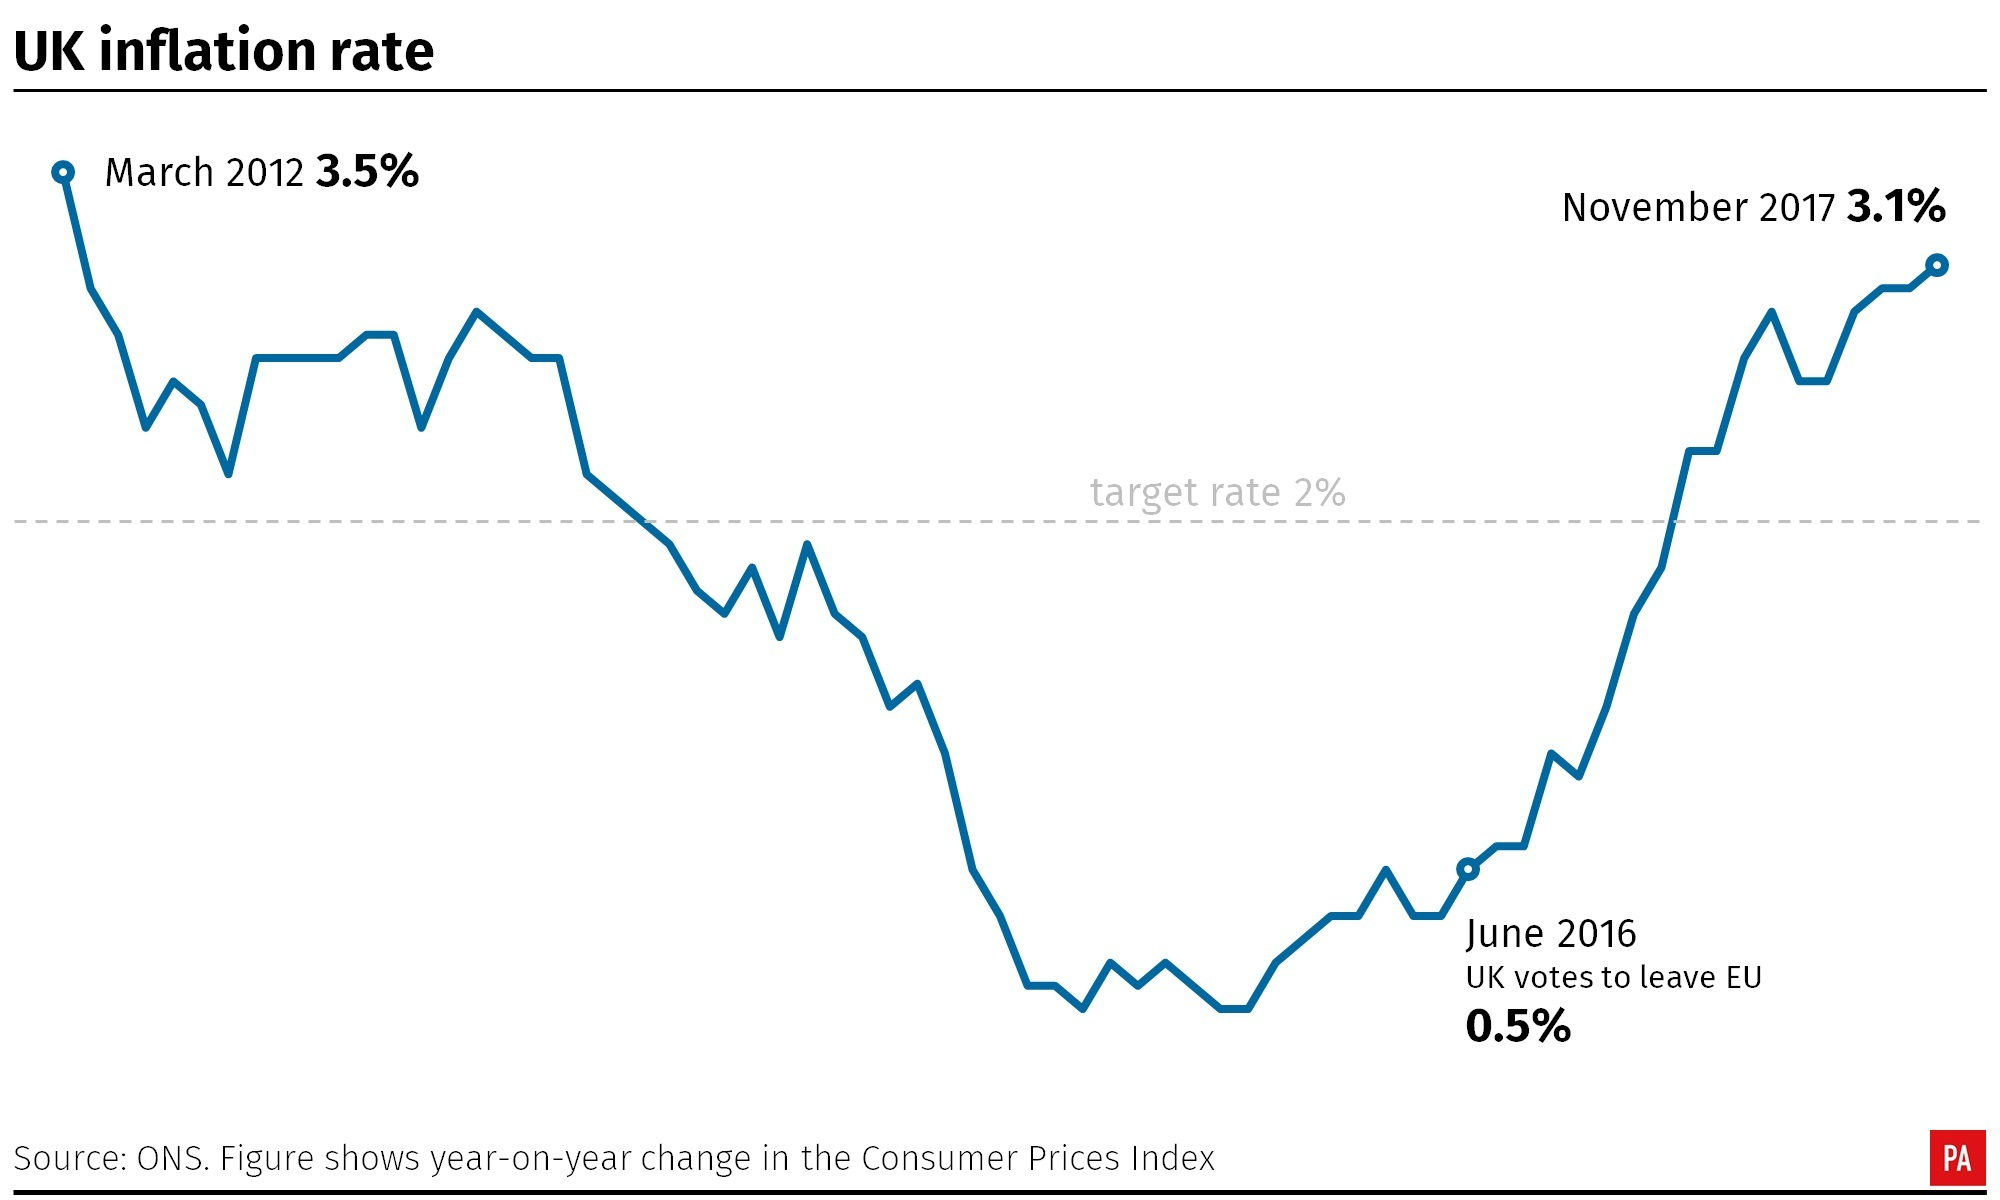 Inflation surges to 3.1% in November, a near six-year high